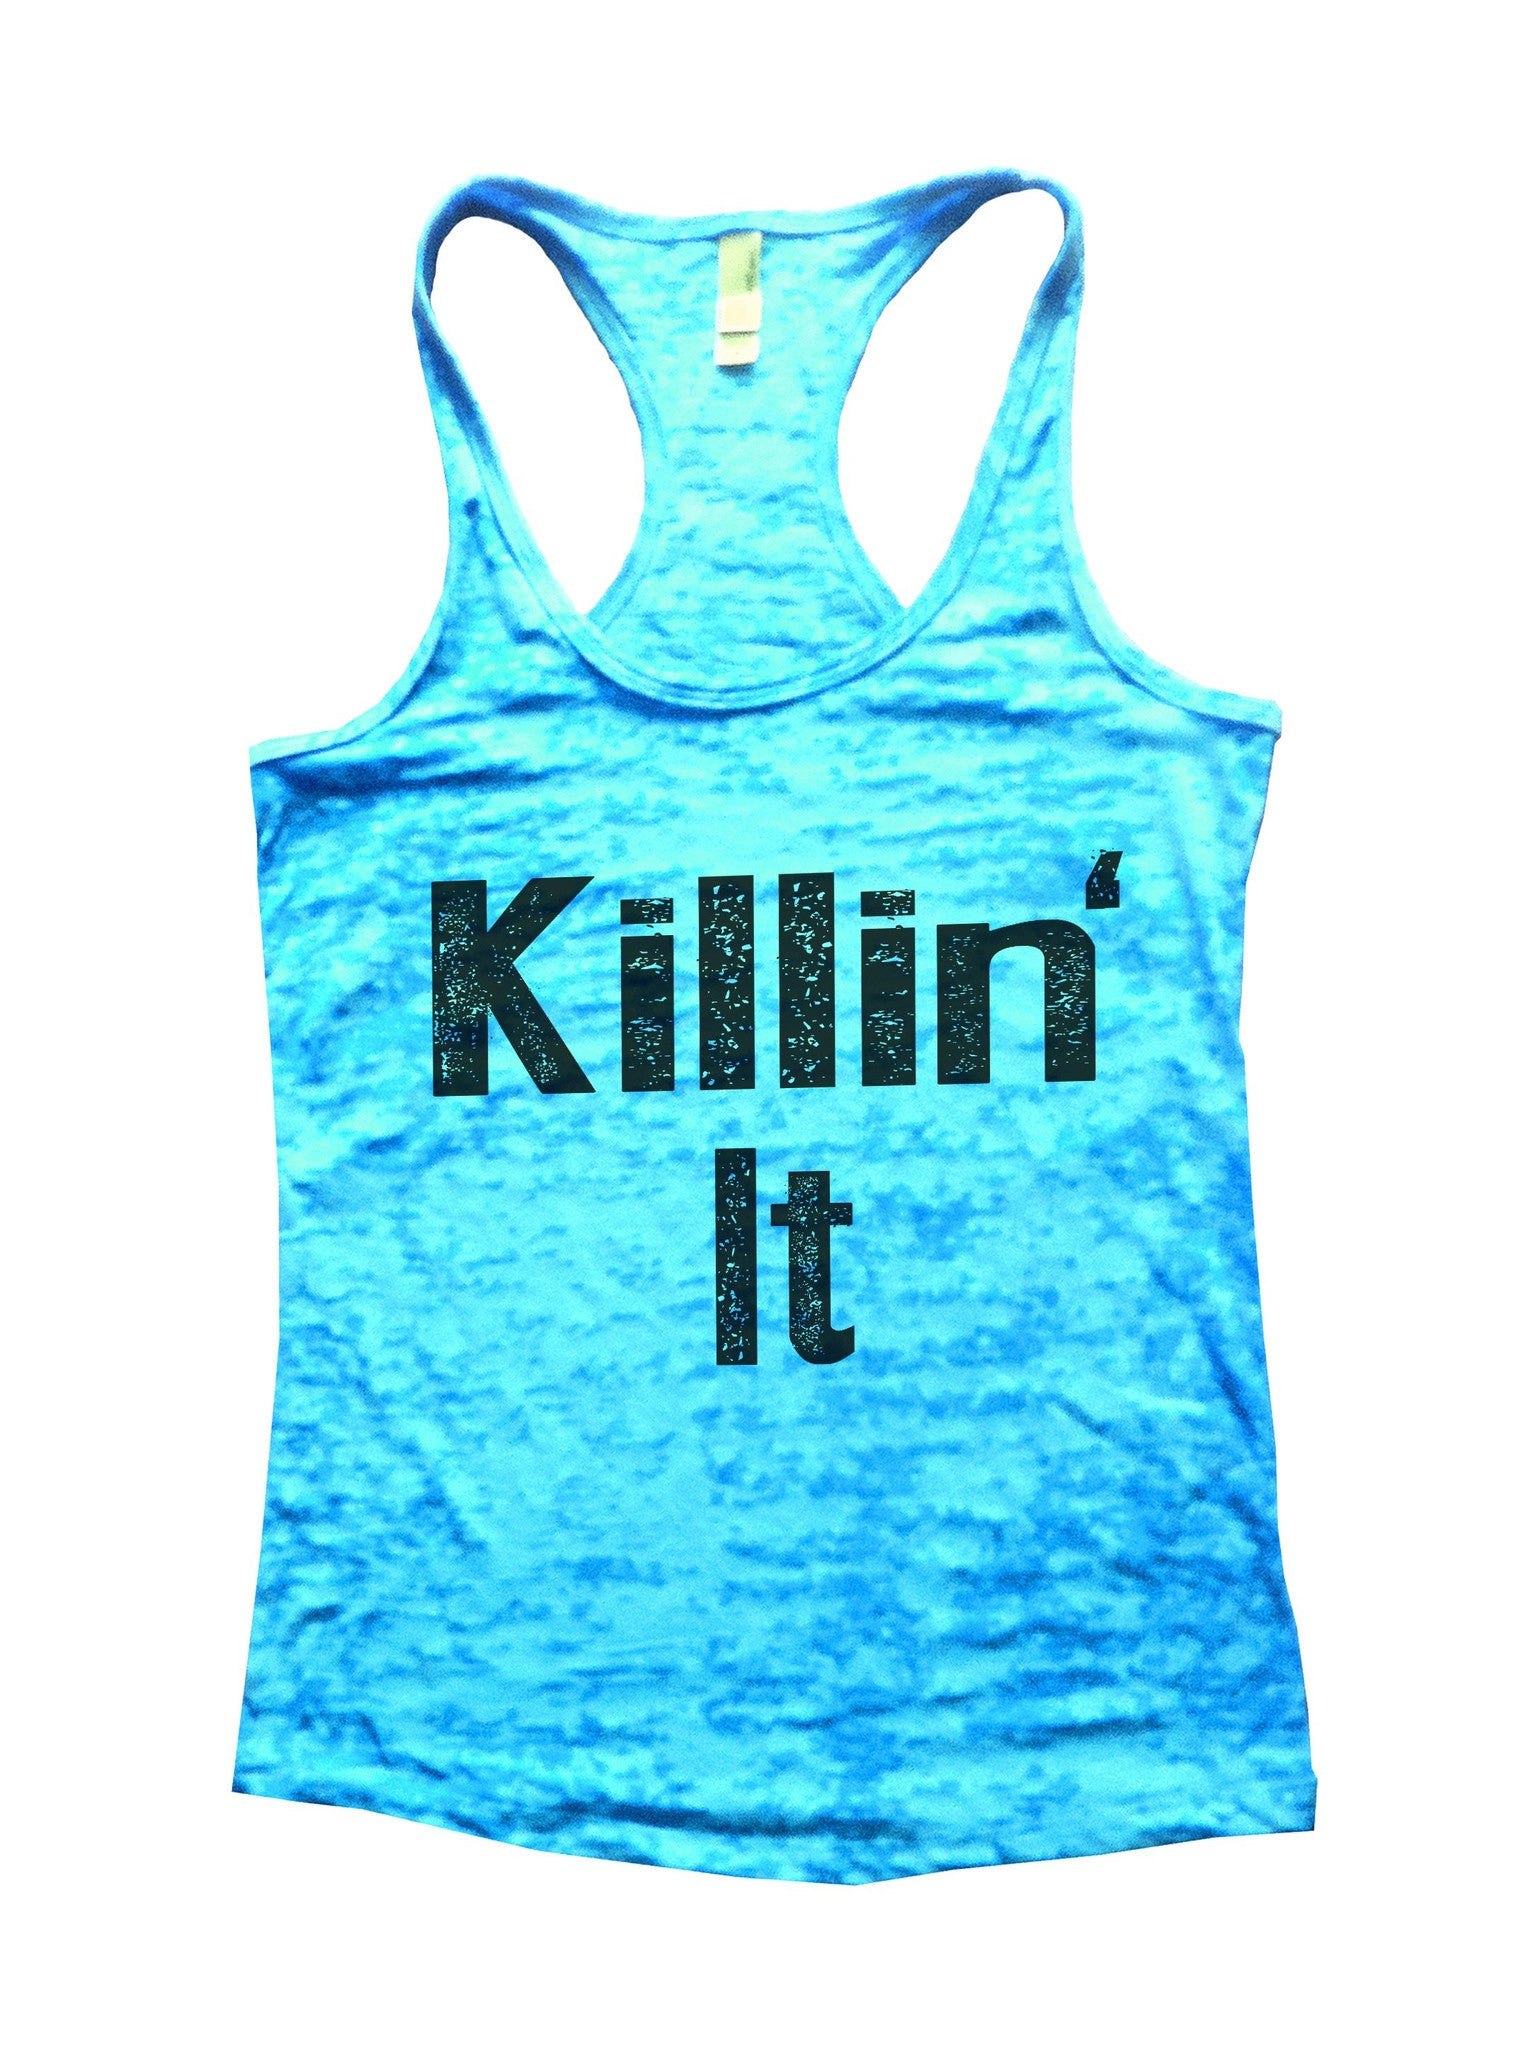 Killin It Burnout Tank Top By BurnoutTankTops.com - 675 - Funny Shirts Tank Tops Burnouts and Triblends  - 1